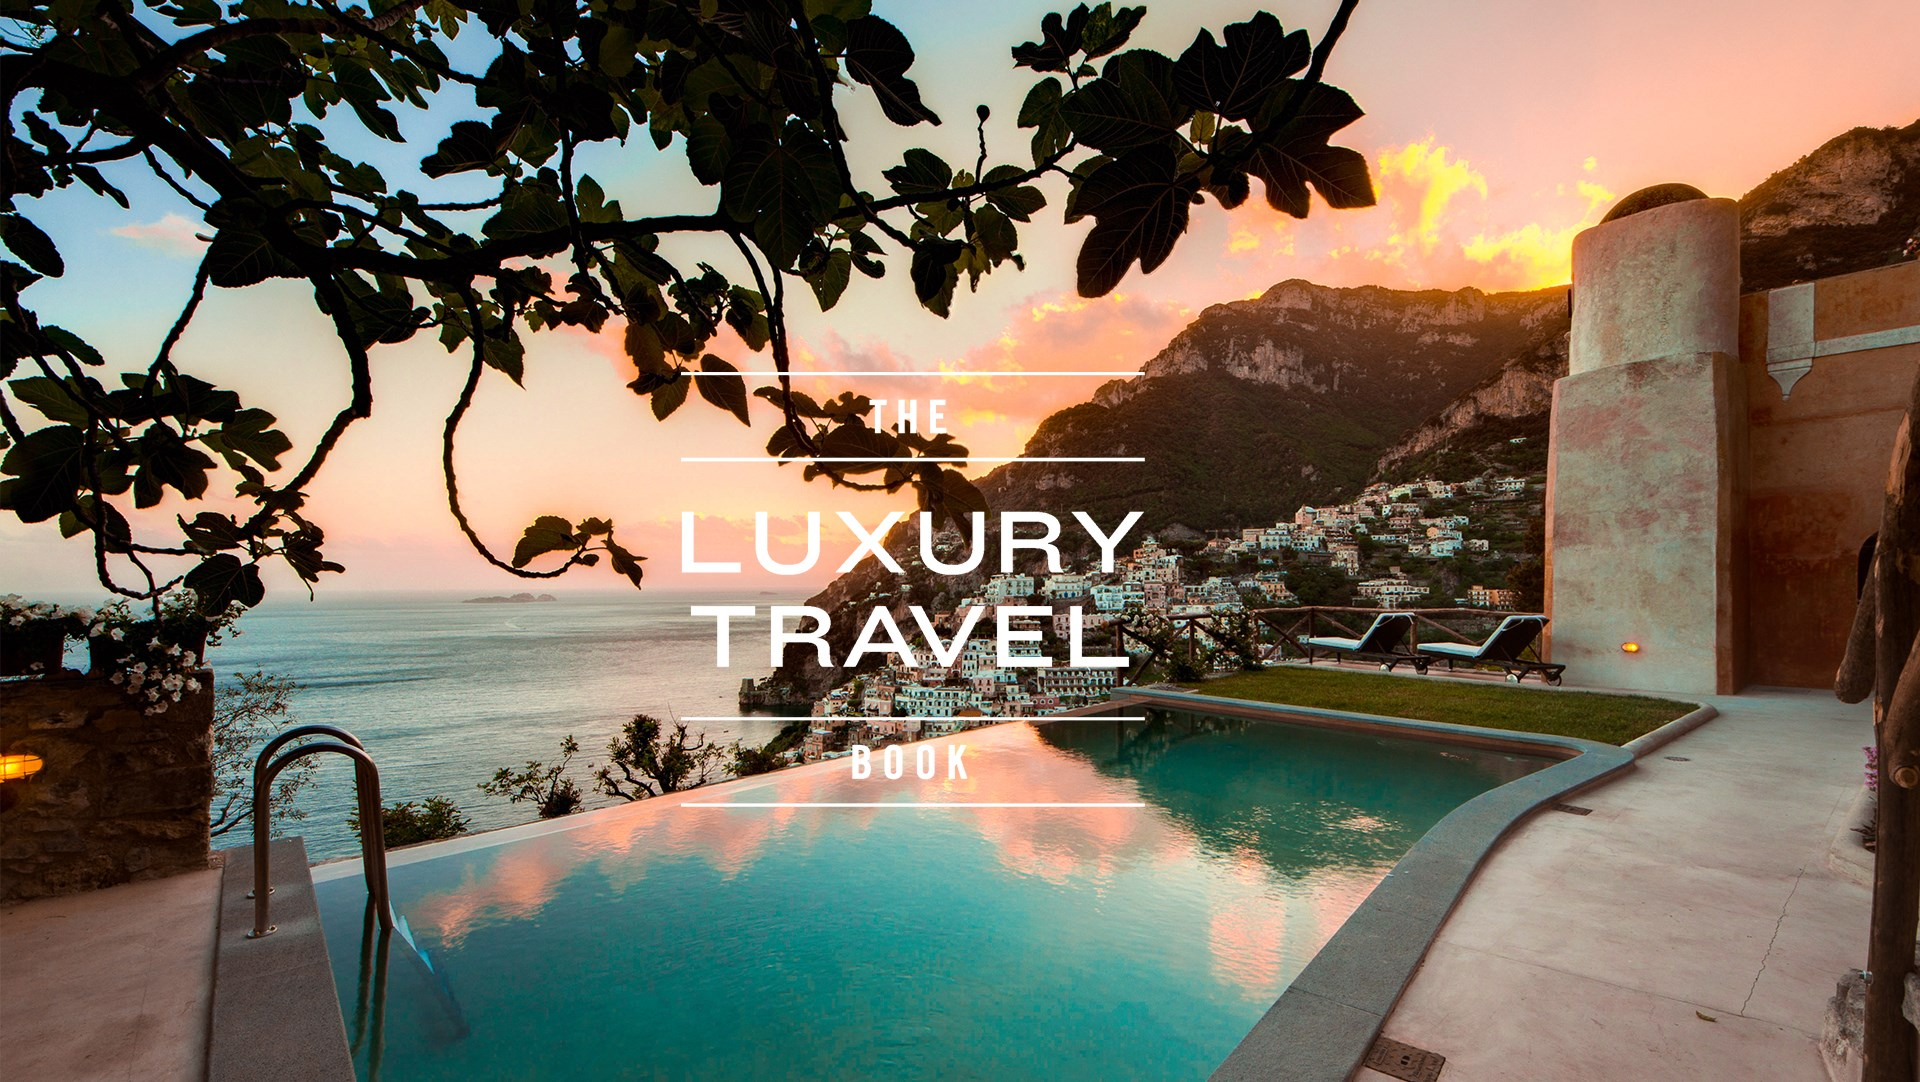 THE LUXURY TRAVEL BOOK | HOLIDAY PROPERTY MARKETING